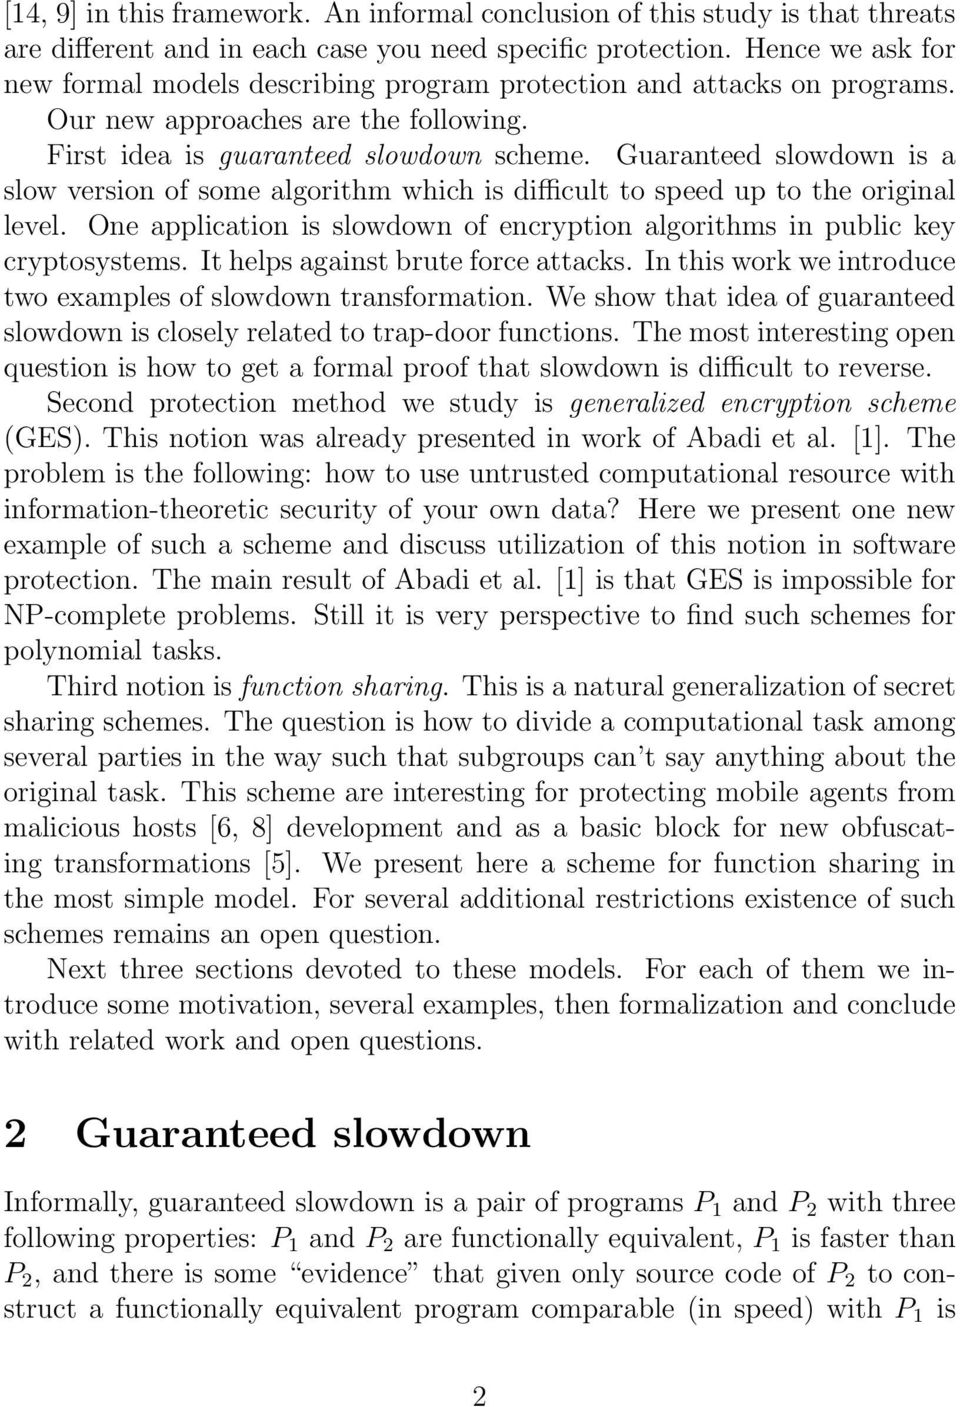 Guaranteed slowdown is a slow version of some algorithm which is difficult to speed up to the original level. One application is slowdown of encryption algorithms in public key cryptosystems.